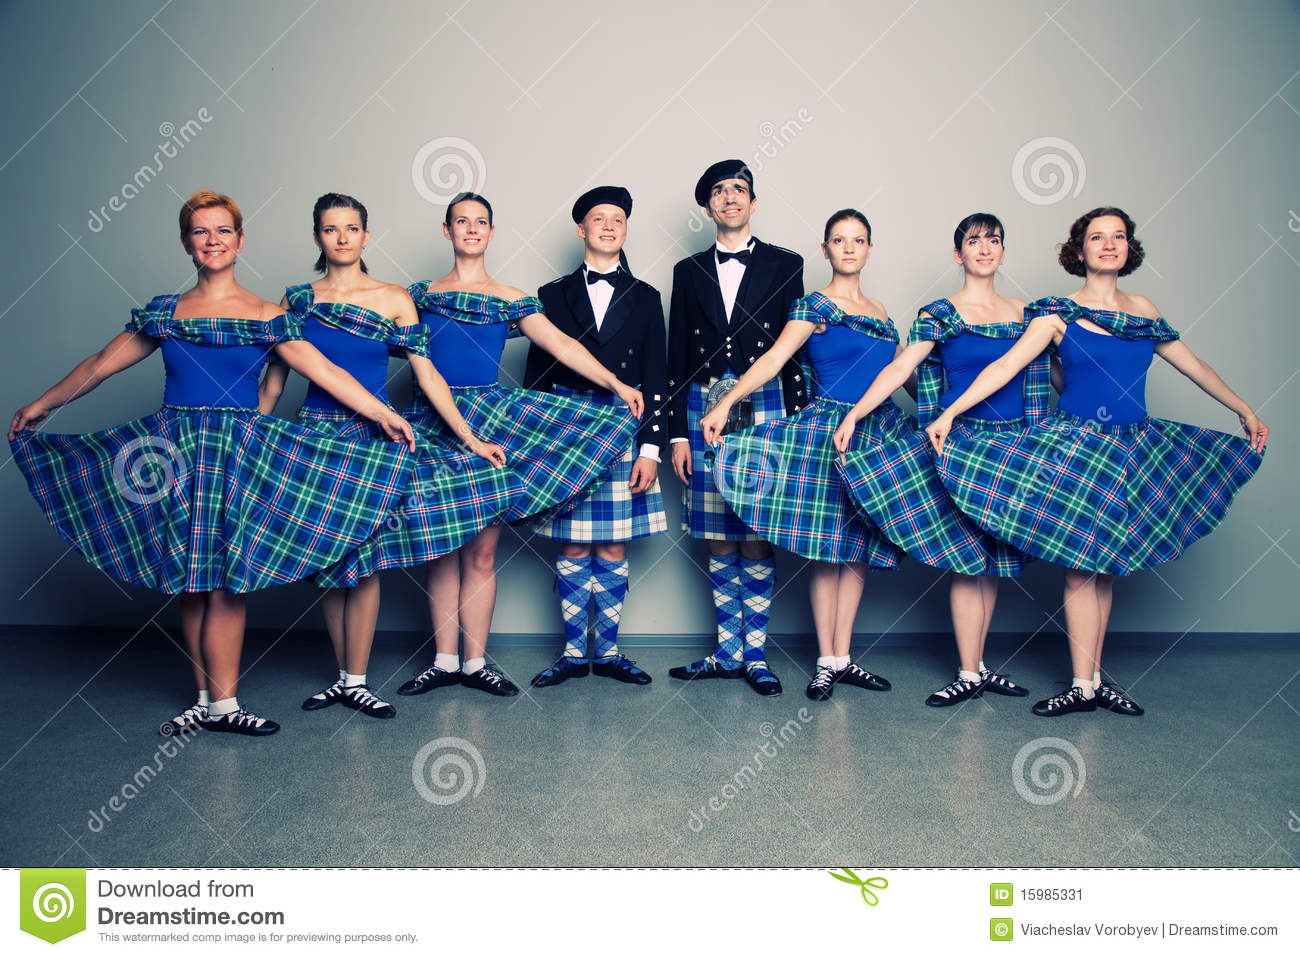 Dancers In Kilts Stock Image - Image: 15985331